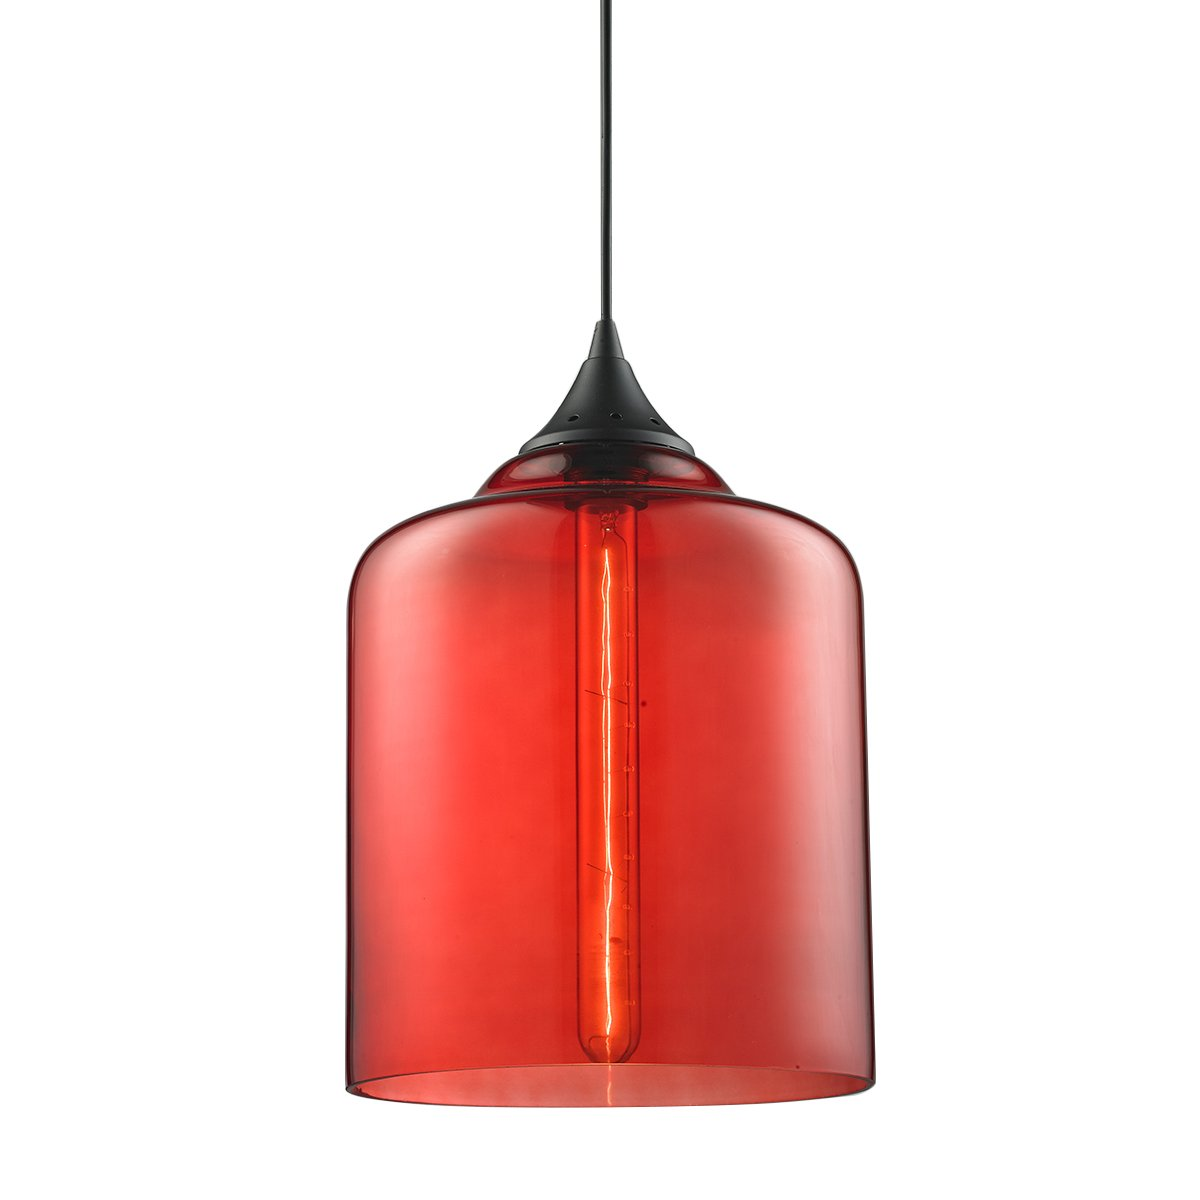 Modern Industrial Vintage Glass Globe Pendant Light - MKLOT Minimalist Eco-Power Edison Style 7.09'' Wide Hanging Chandelier Ceiling Lighting Mounted Fixture with Red Glass